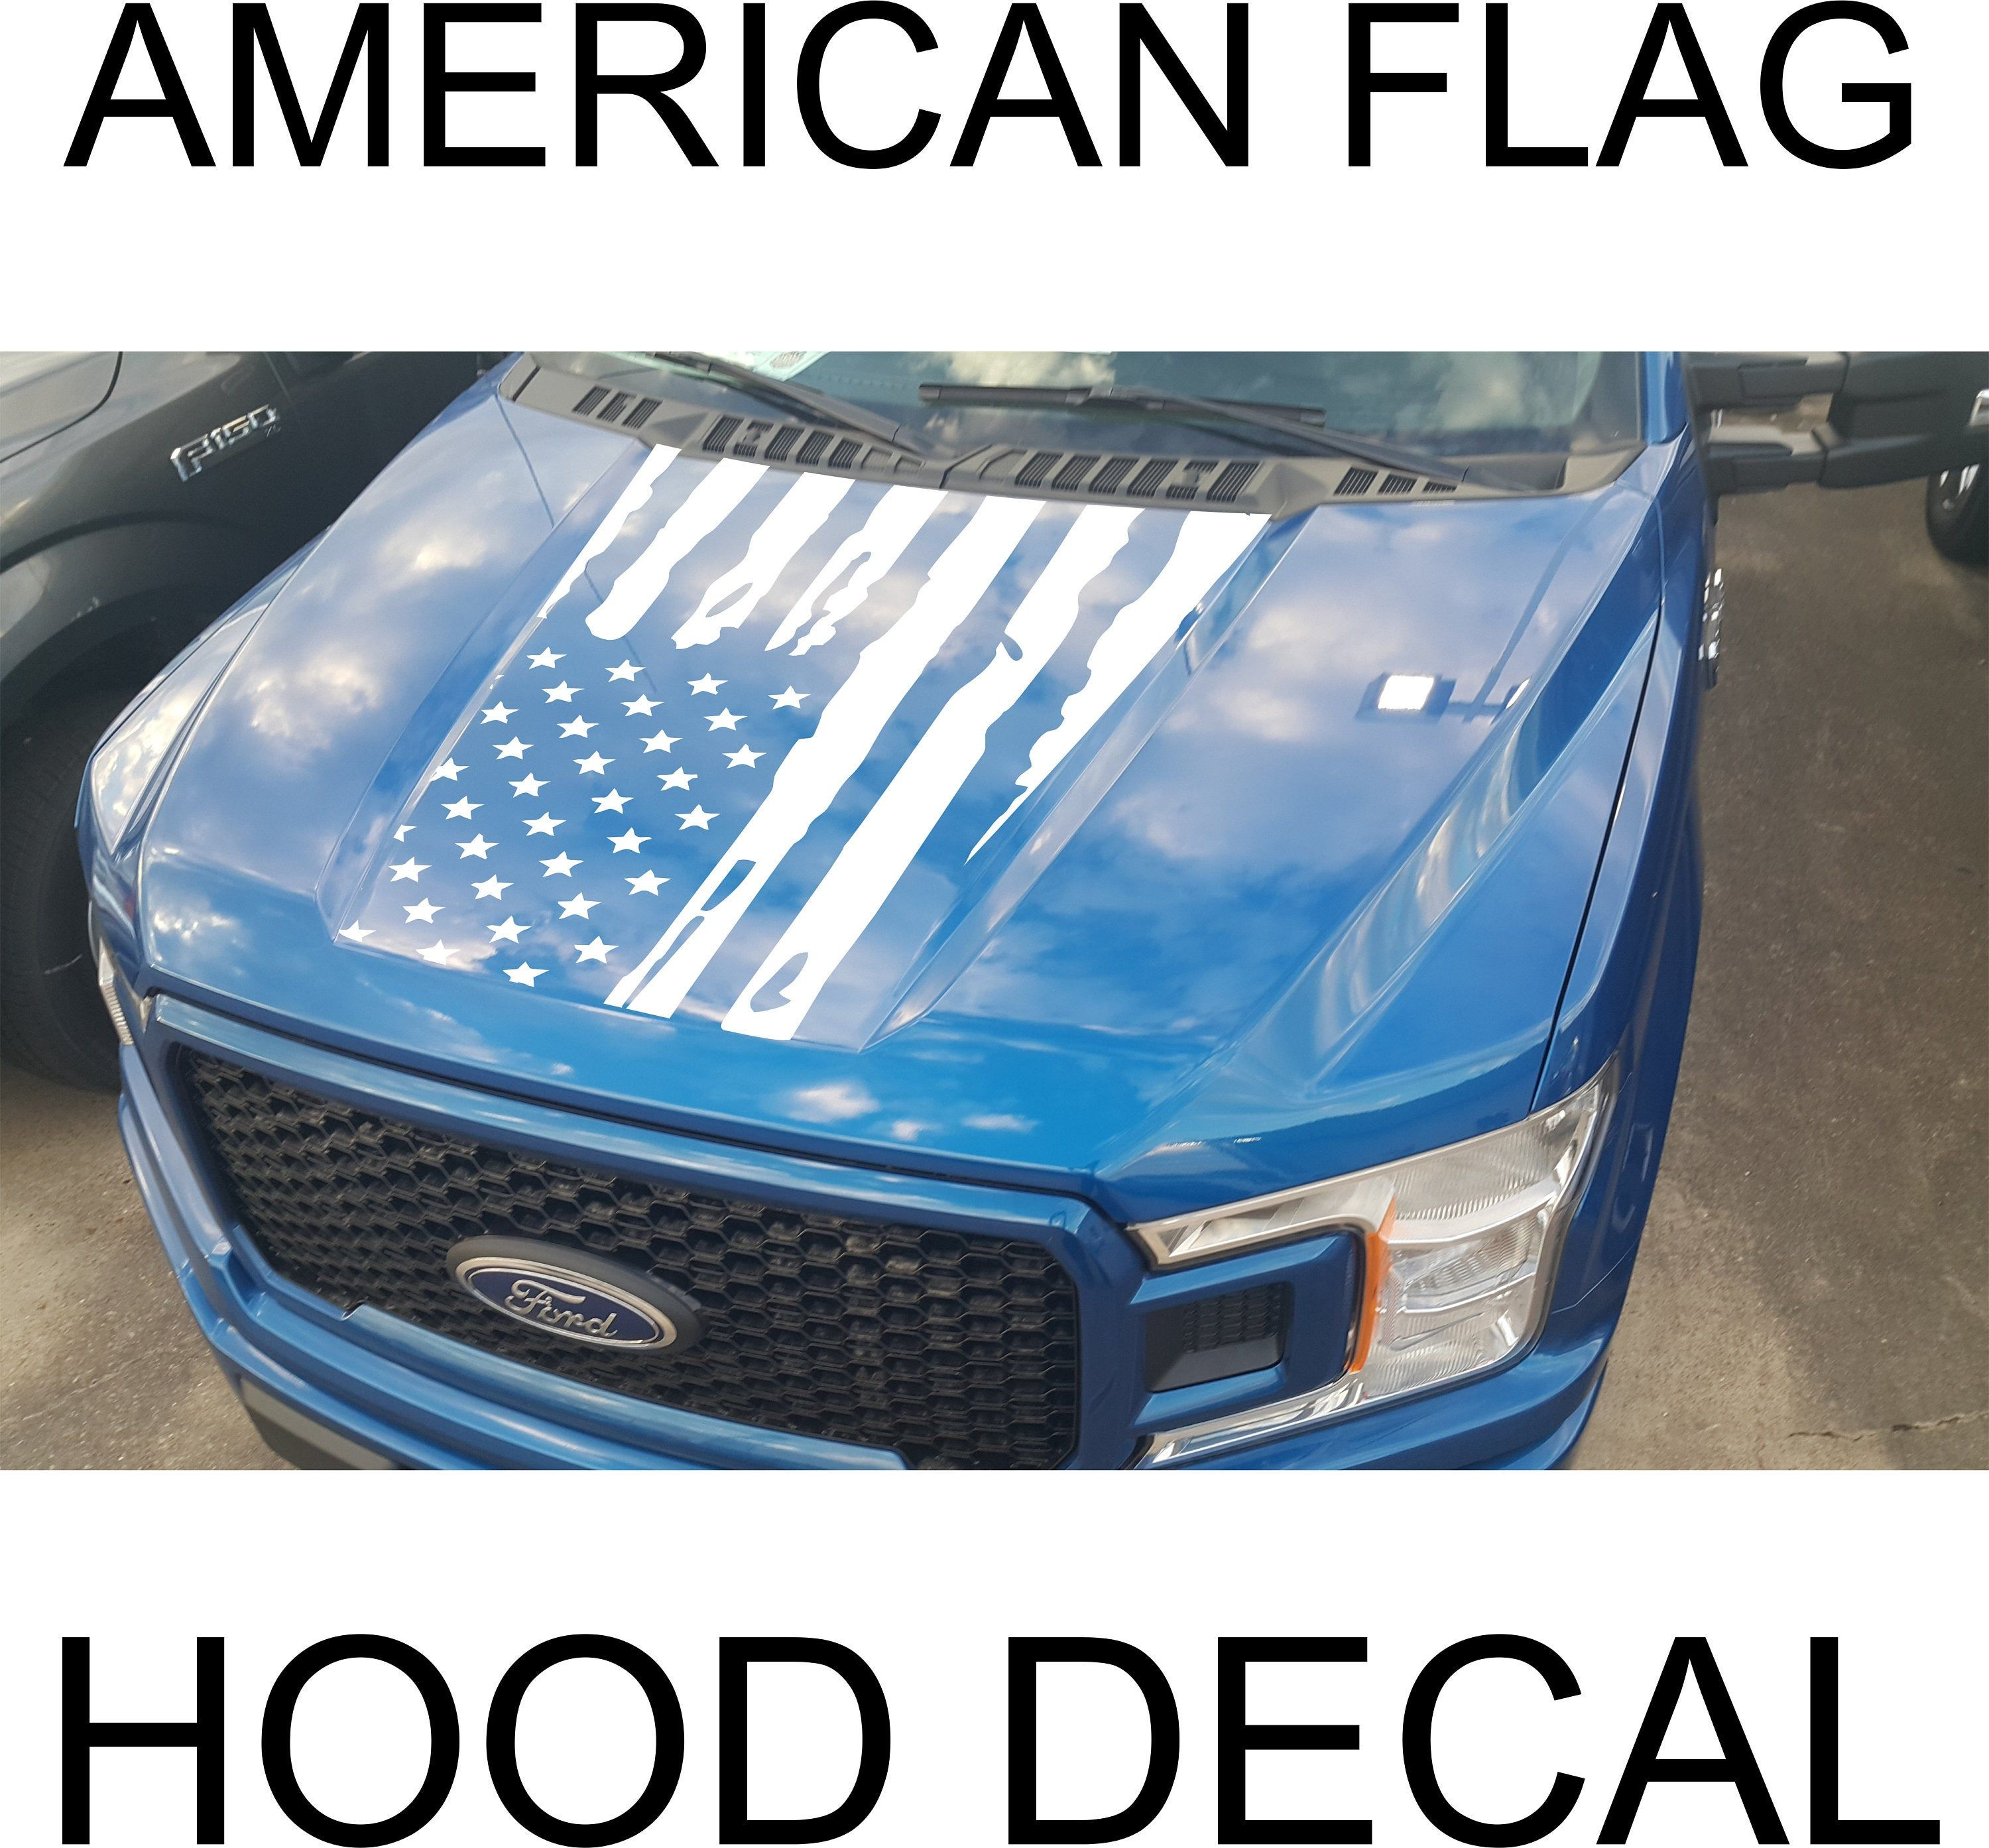 Pin By Tatadecals On My Saves Ford F150 F150 Blue Car Accessories [ 2787 x 3000 Pixel ]